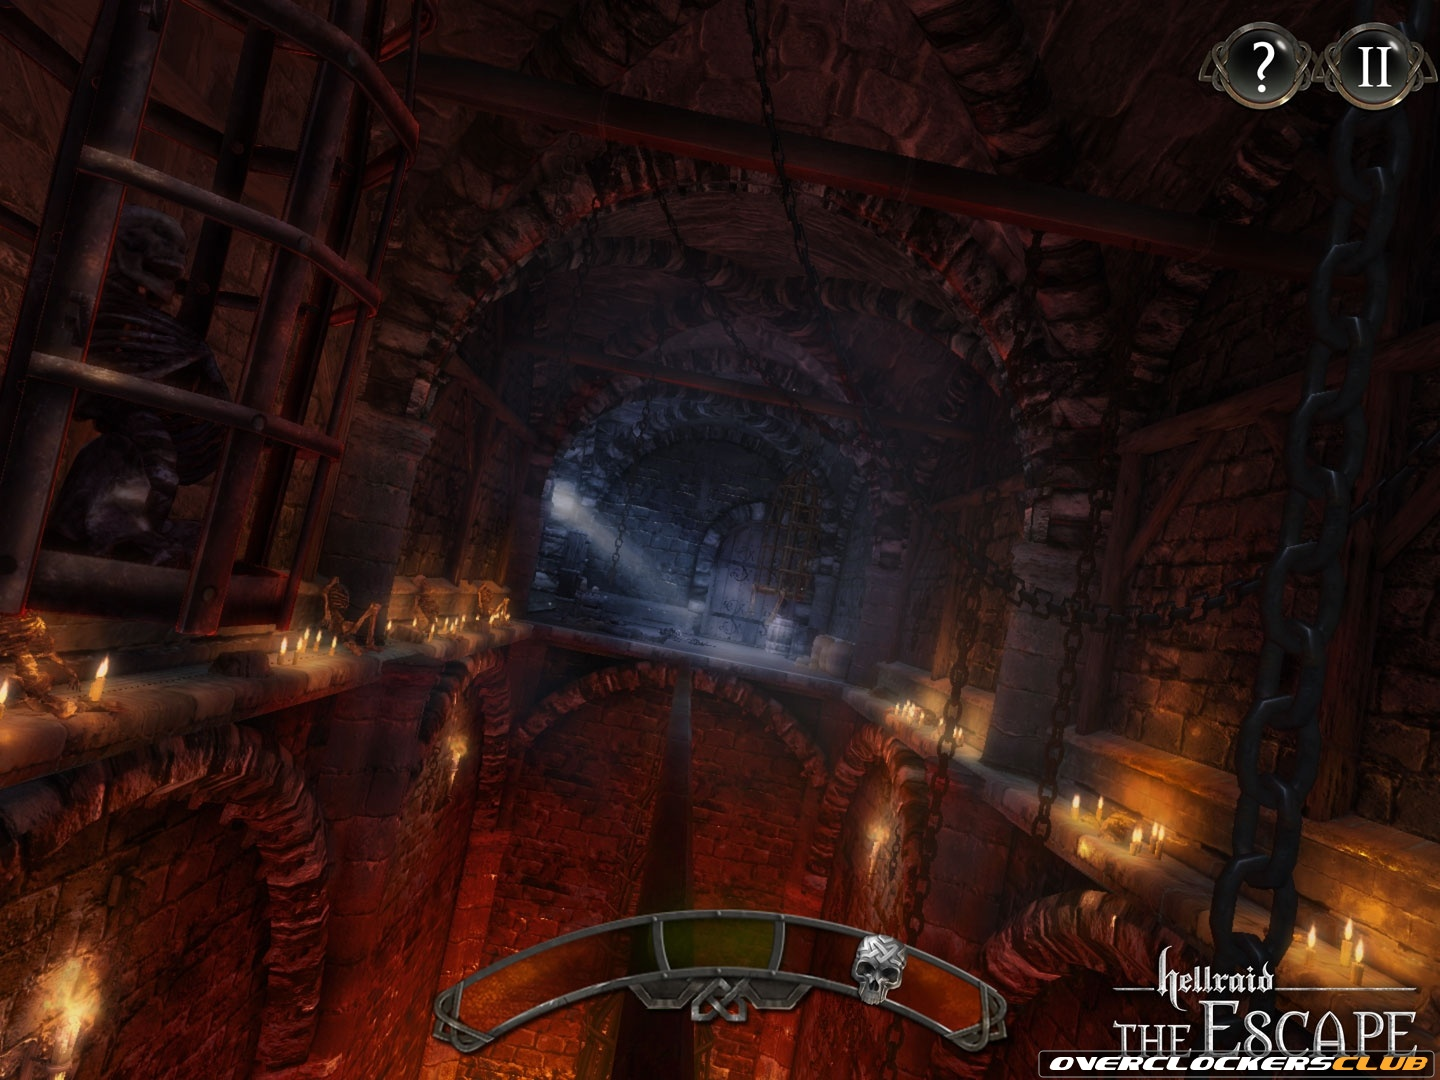 Techland Announces Hellraid: The Escape, a Mobile Game Set in the Hellraid Universe